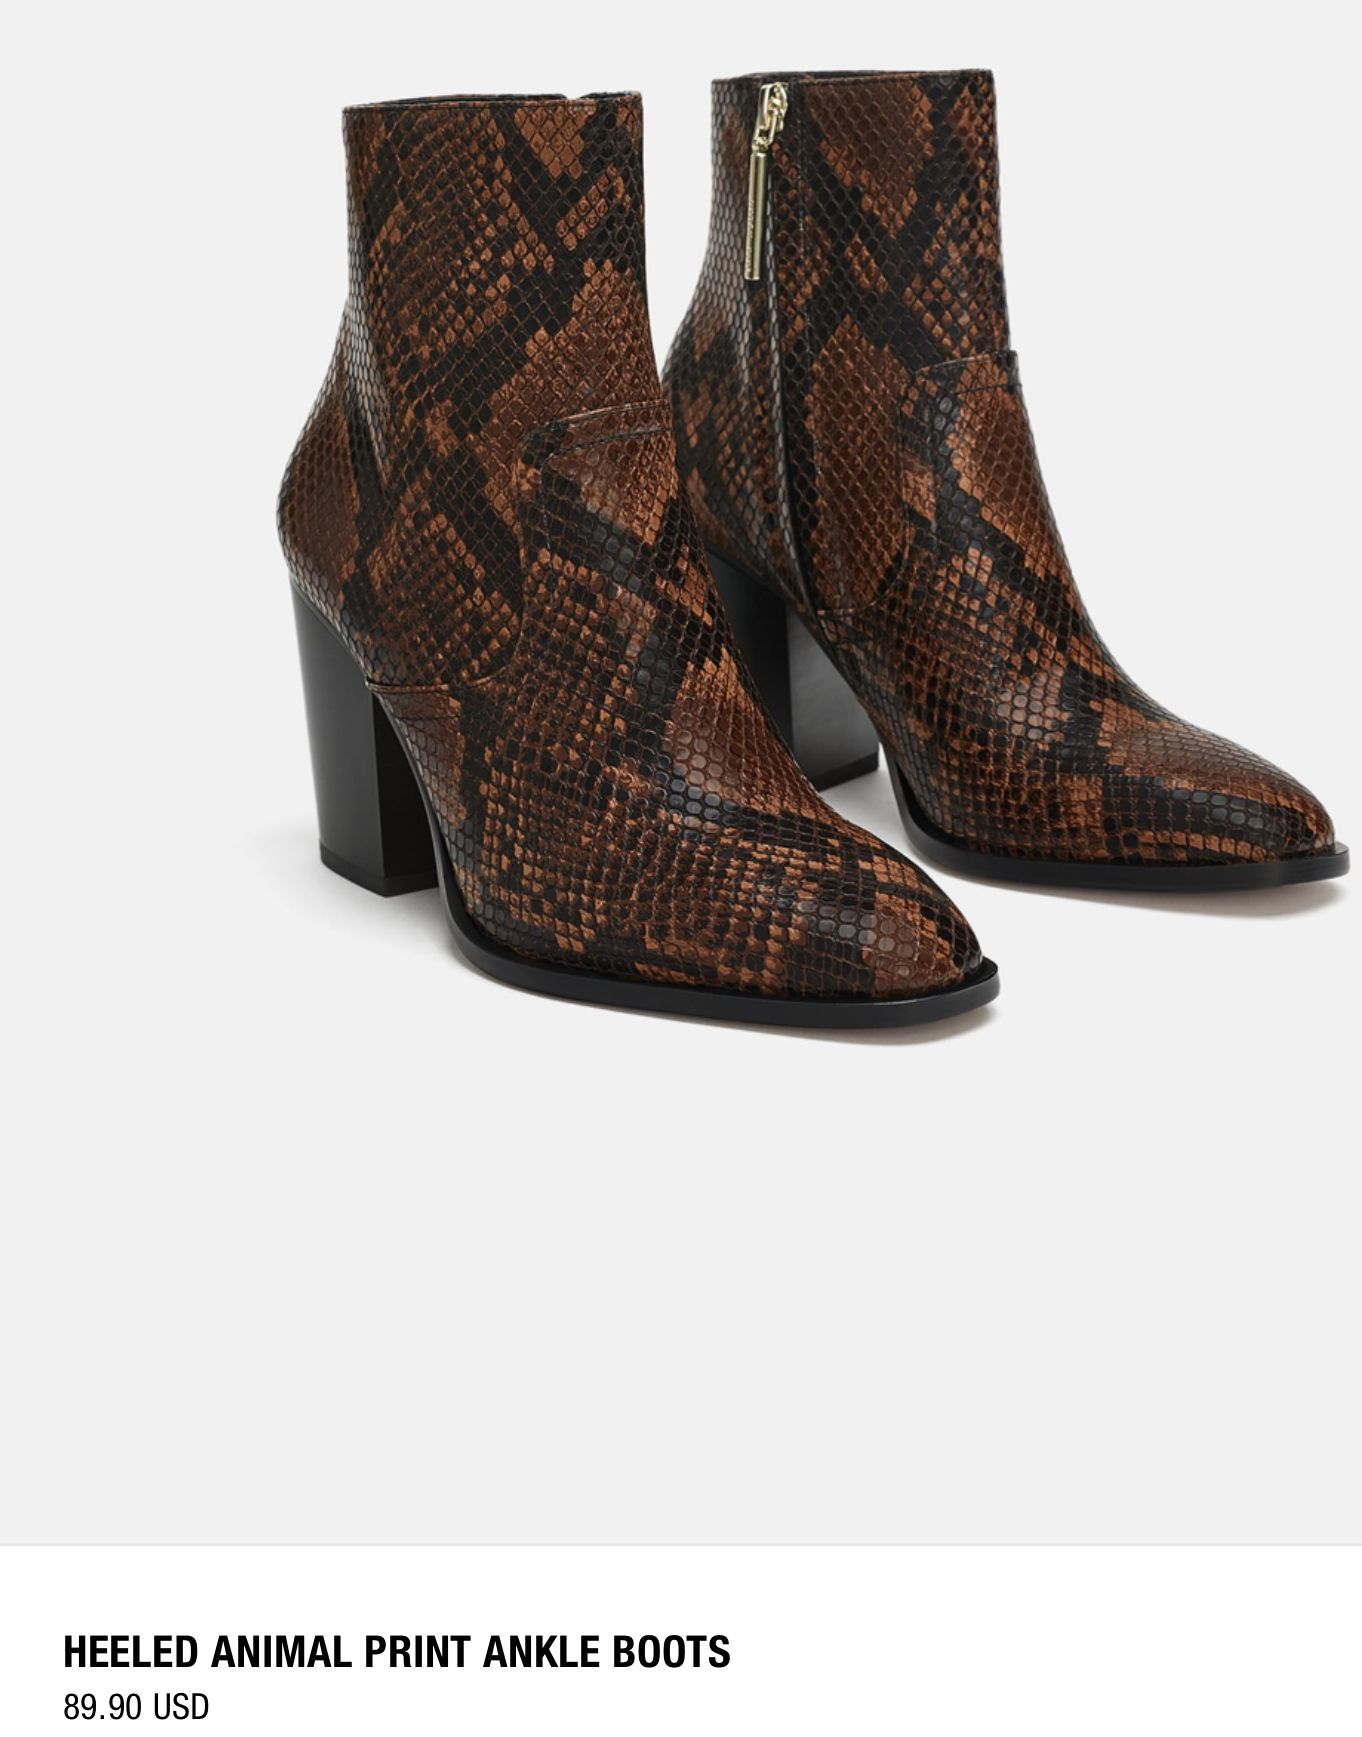 6a43c6e15c15 Zara heeled animal print ankle boots Brown black snakeskin booties ...